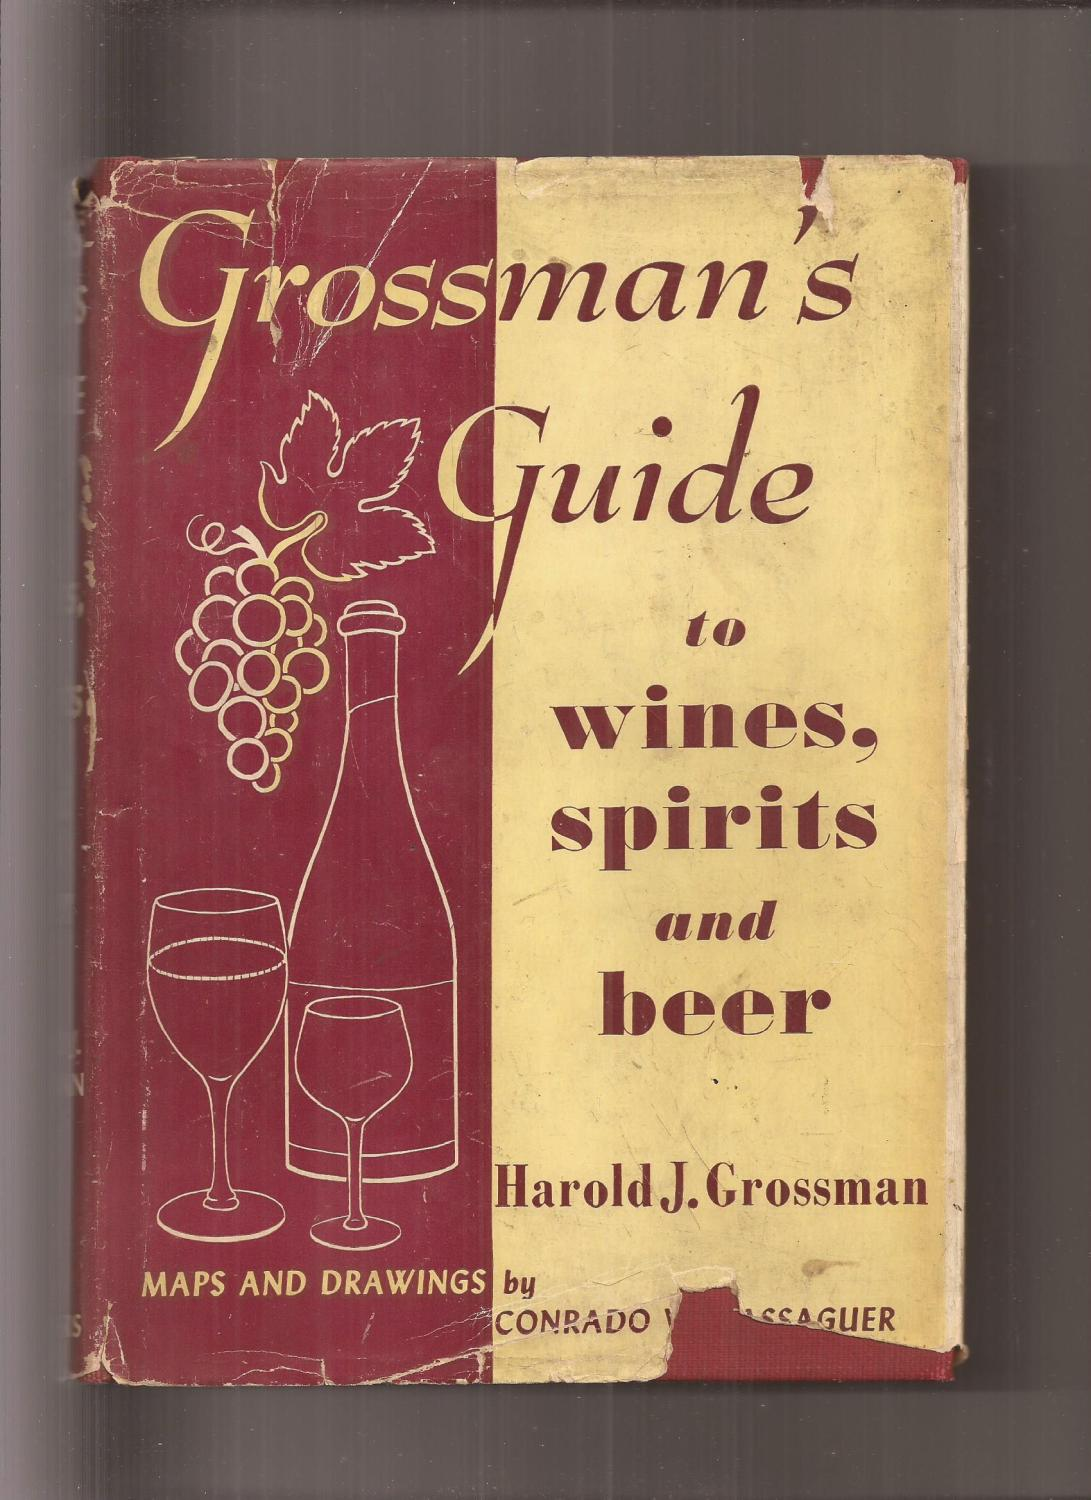 Grossman's Guide To Wines, Spirits, and Beers Grossman, Harold J. [ ] [Hardcover] 404 pages. 6 5/8  x 9 1/2  tall. Red cloth, maps and drawings by Conrado W. Massaguer plus black/white photos in text. Square, solid copy with name and date 1944 in ink on front free endpaper, soil spots on bottom page edges, some tanning on endpapers, pages themselves are clean, off-white, some light soil on covers, a bit of edge wear. Illustrated DJ has creases, soil, 2 1/4  wide and up to 3/4  deep piece out of bottom front panel, other small chips, two 1 1/2 inch and other small edge tears. Scribner's First Edition is very scarce. A on copyright page indicates First Scribner's Edition. I believe the very first edition was by Sherman and Spoerer, published in 1940.